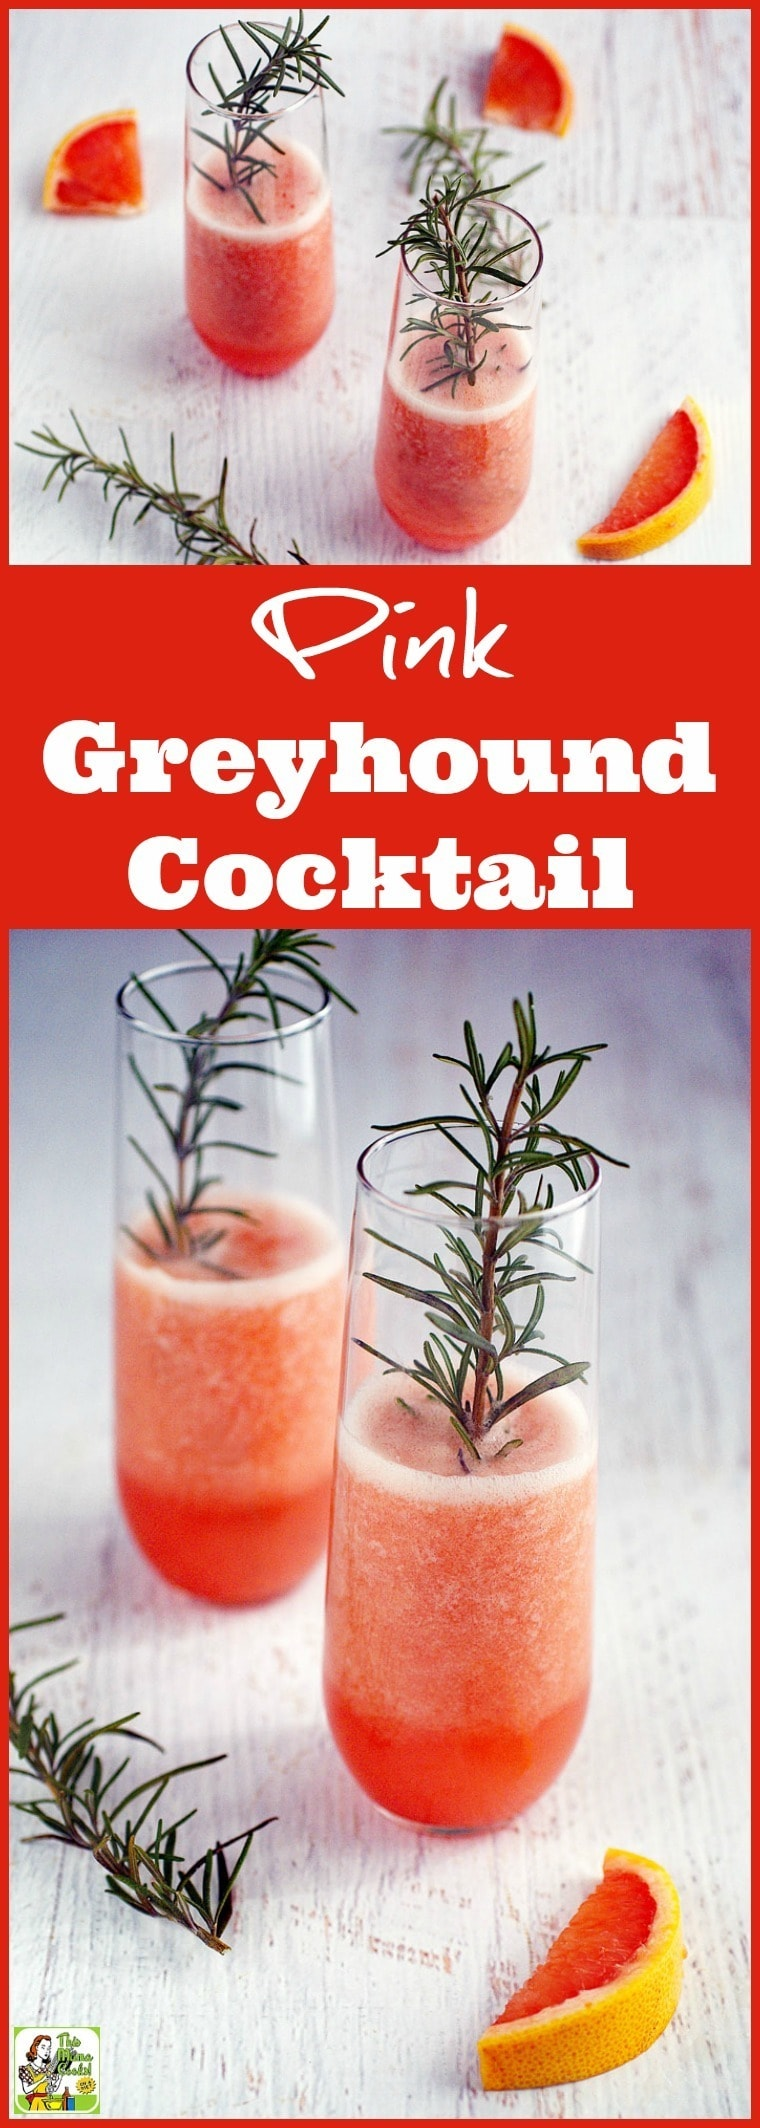 Make this Pink Greyhound Cocktail recipe for your next party. Click to get this easy and refreshing no sugar grapefruit cocktail recipe.